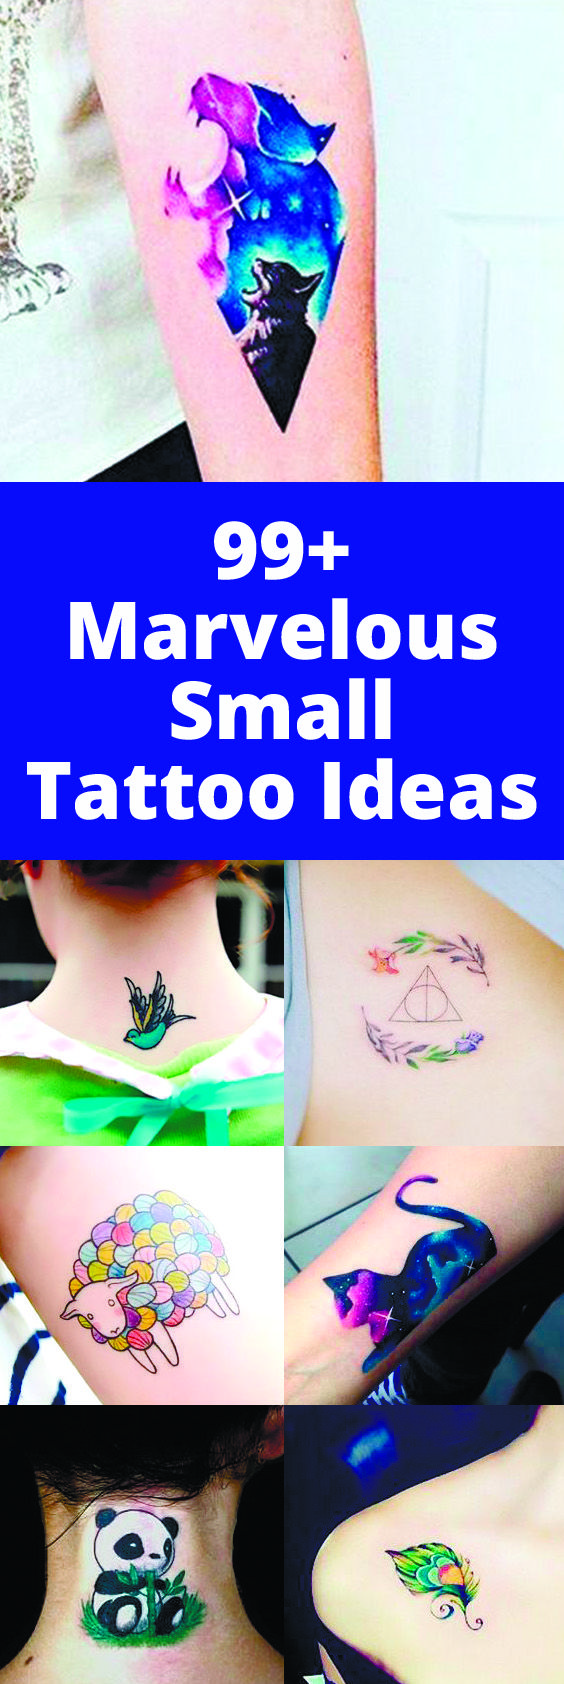 Small tattoo design ideas  marvelous small tattoo design ideas  tattoo  pinterest  small